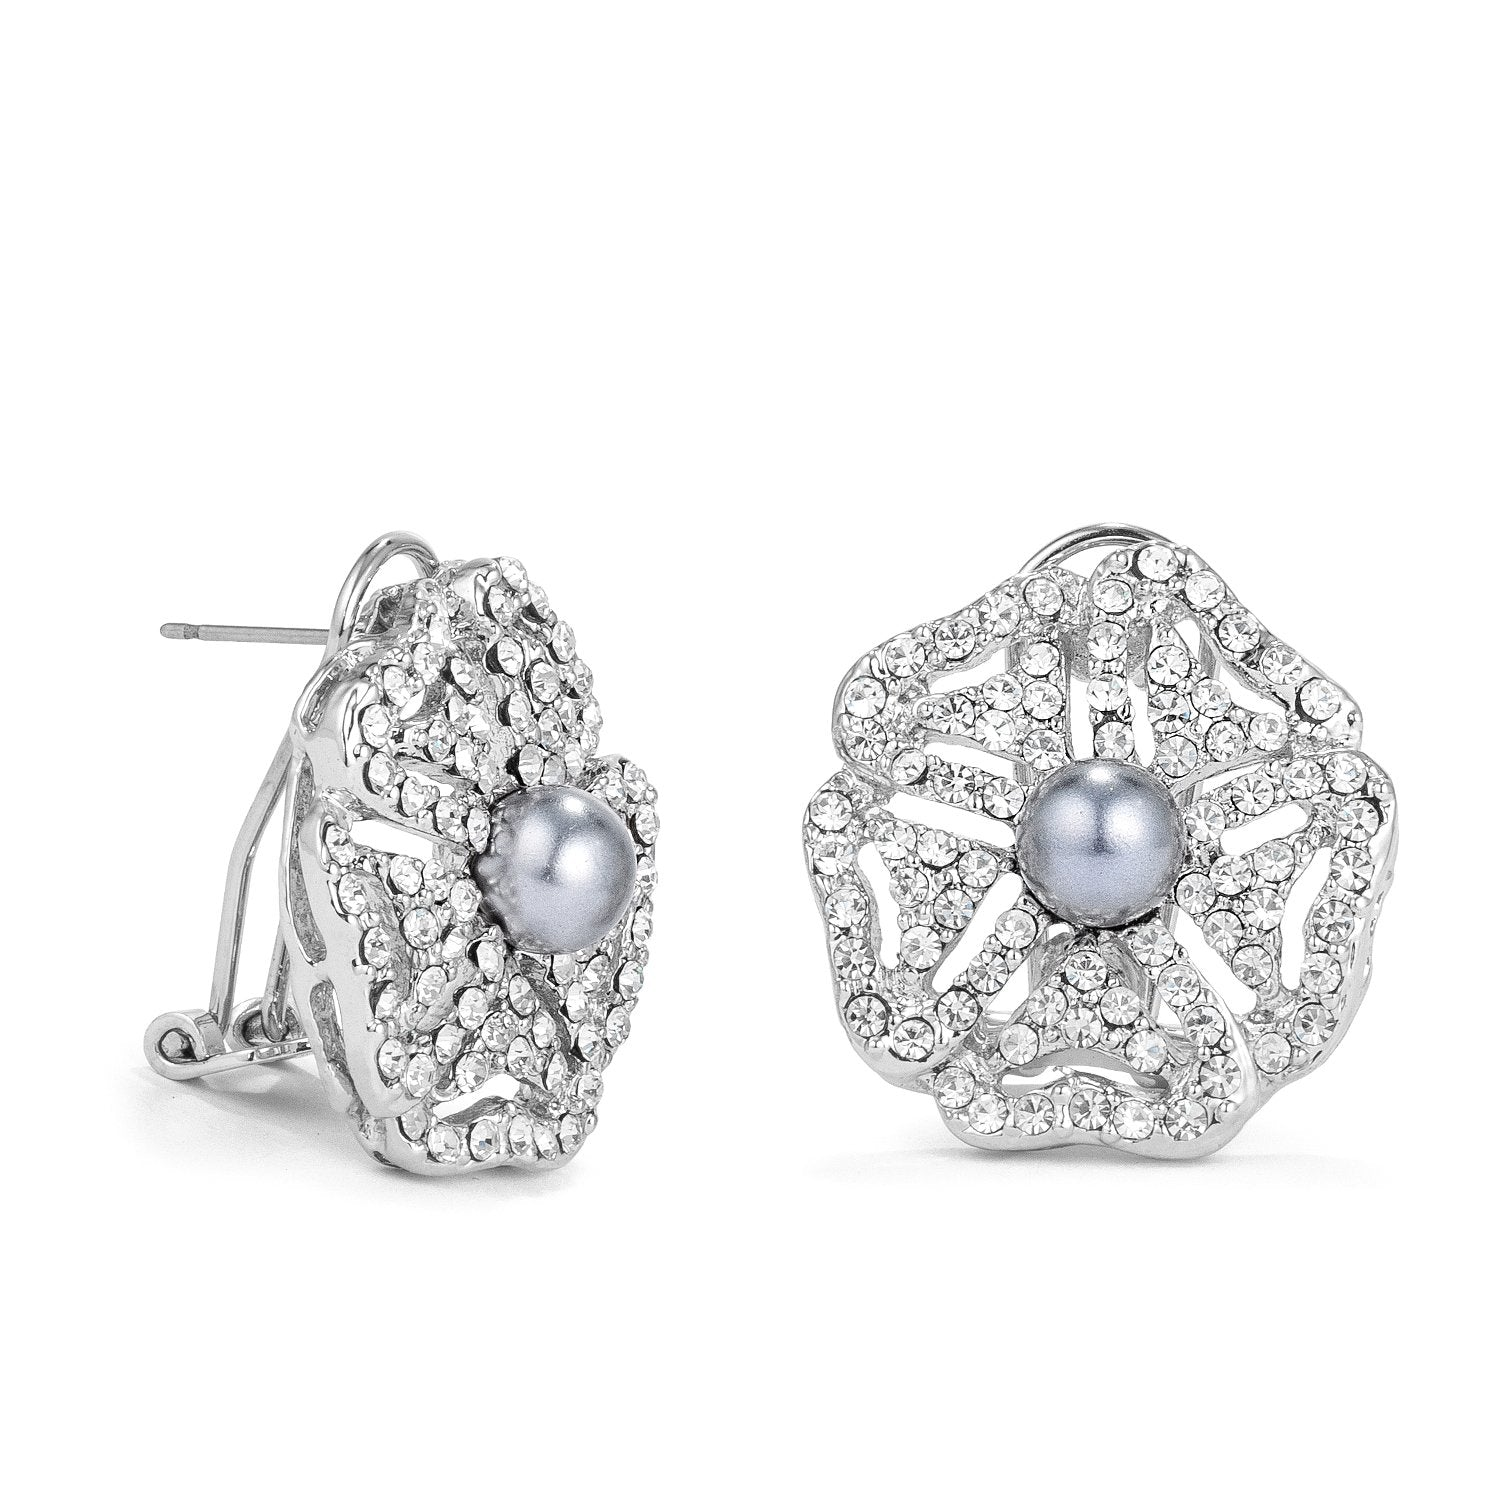 Antique Rhodium Plated CZ and Simulated Grey Pearl Bridal Earrings - E01962R-C82